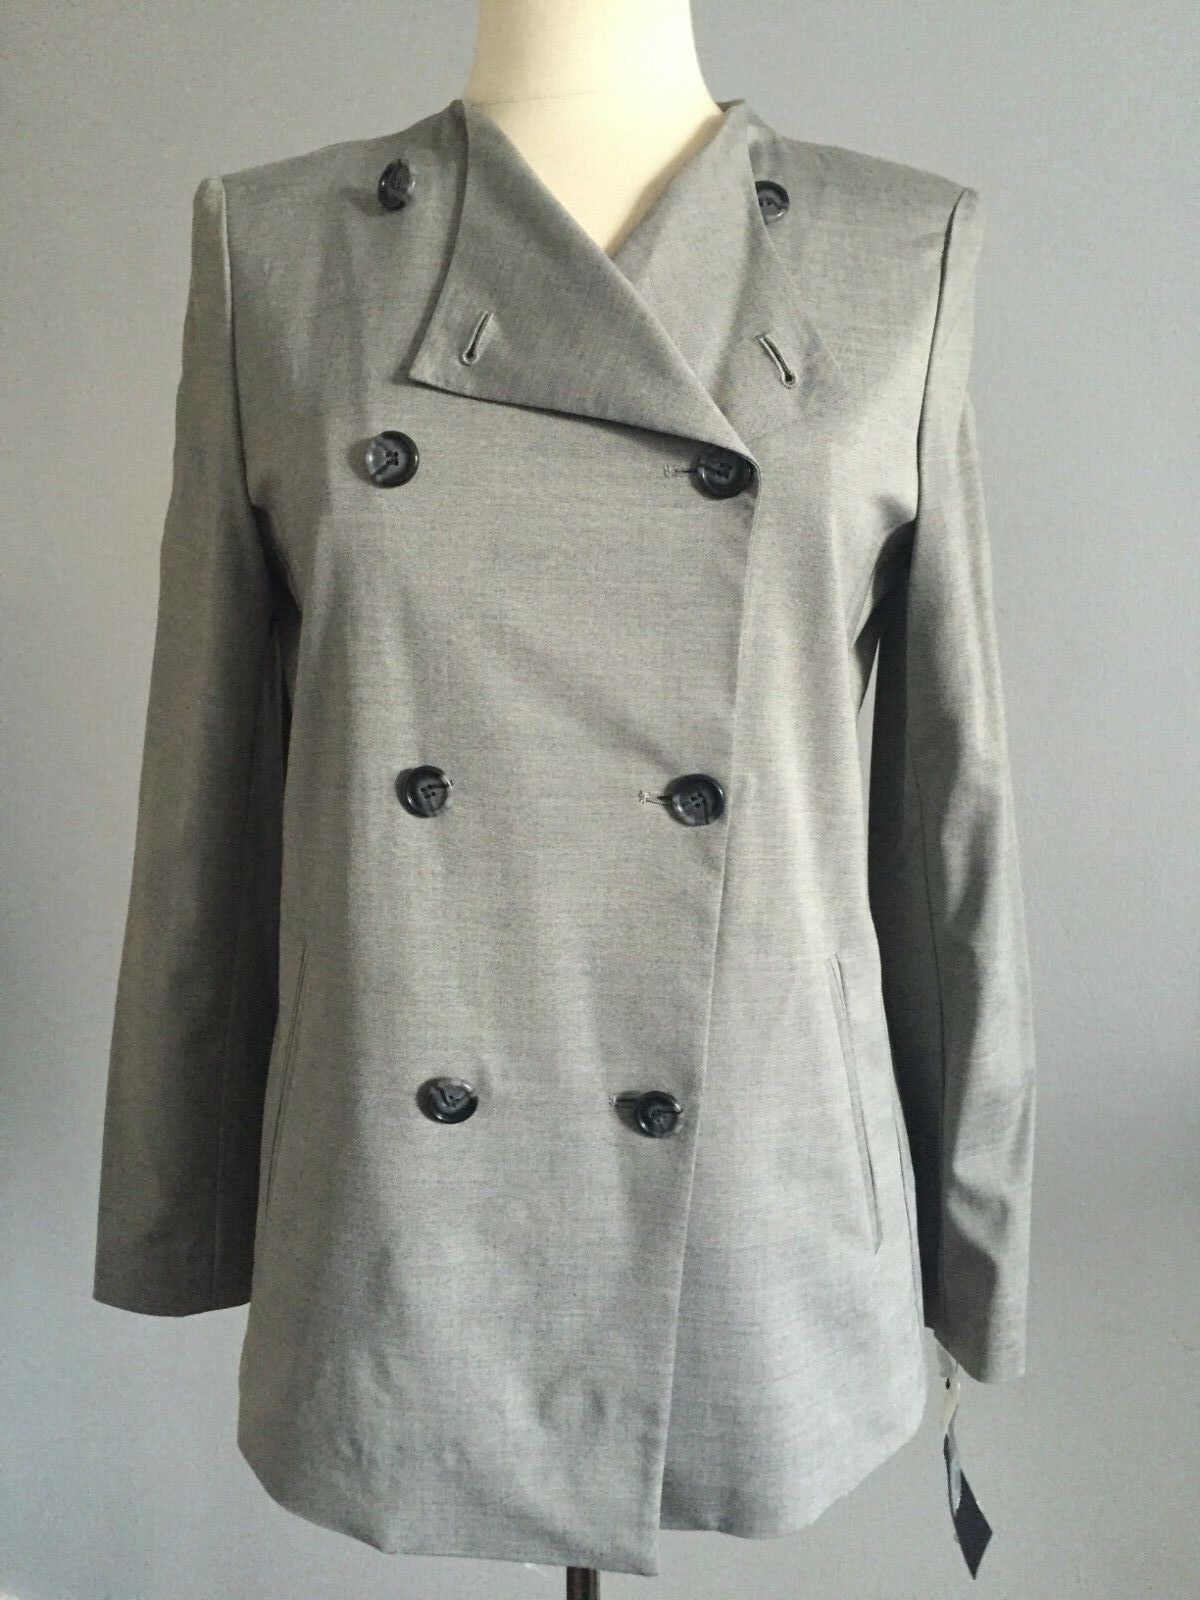 NWT  445 DKNY Aluminum Double Breasted Wool Blend Collarless Long Blazer size 6